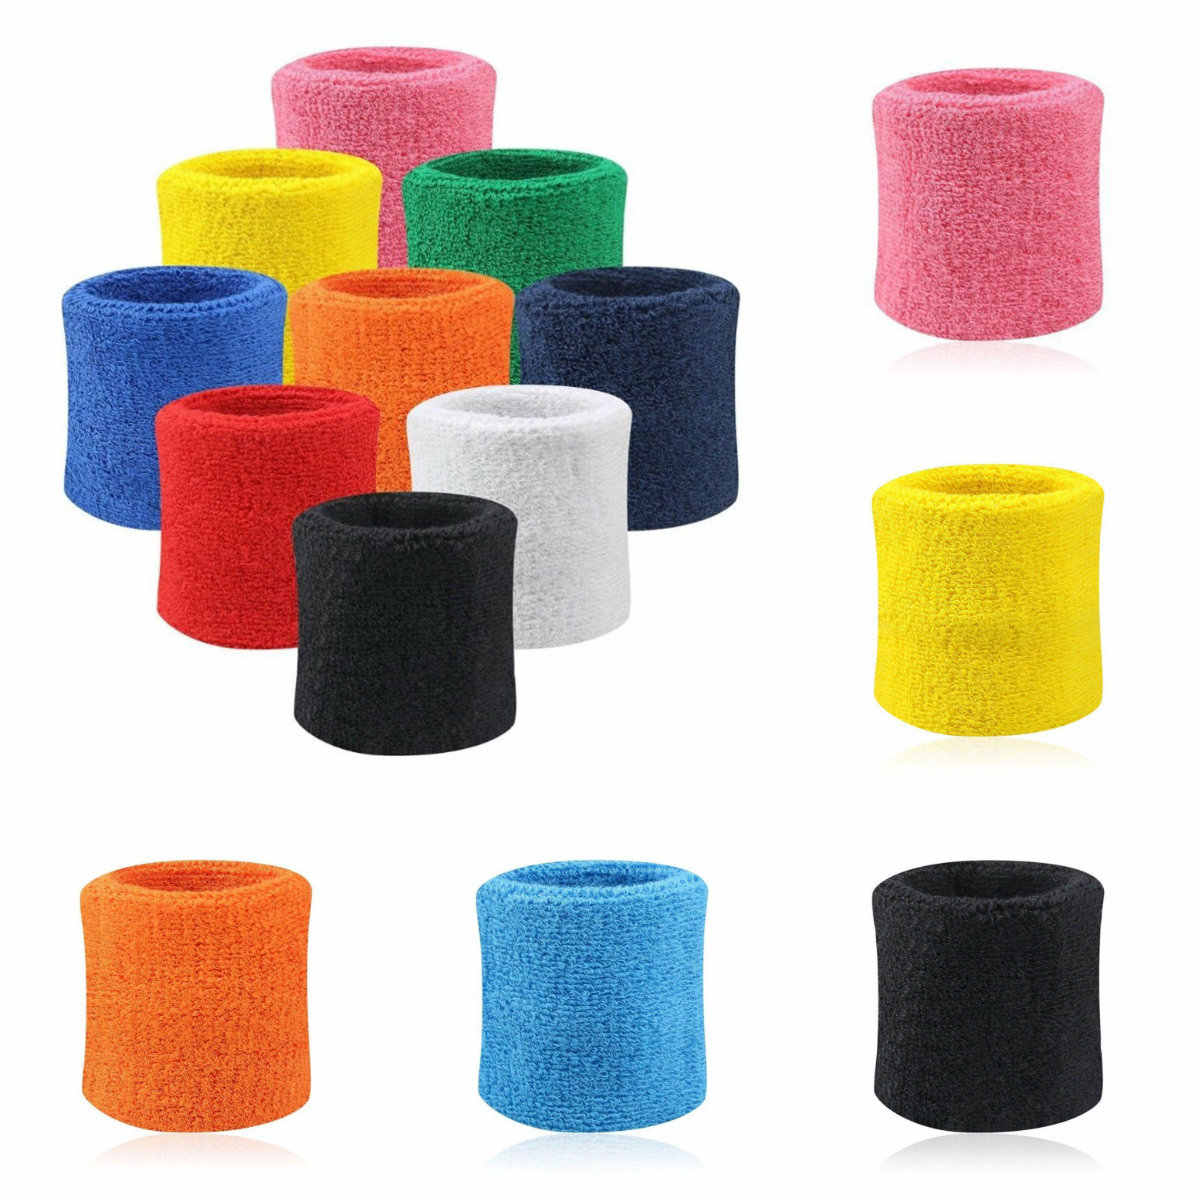 2PCs Wristbands Sport Sweatband Hand Band Sweat Wrist Support Brace Wraps Guards For Gym Volleyball Basketball Teennis